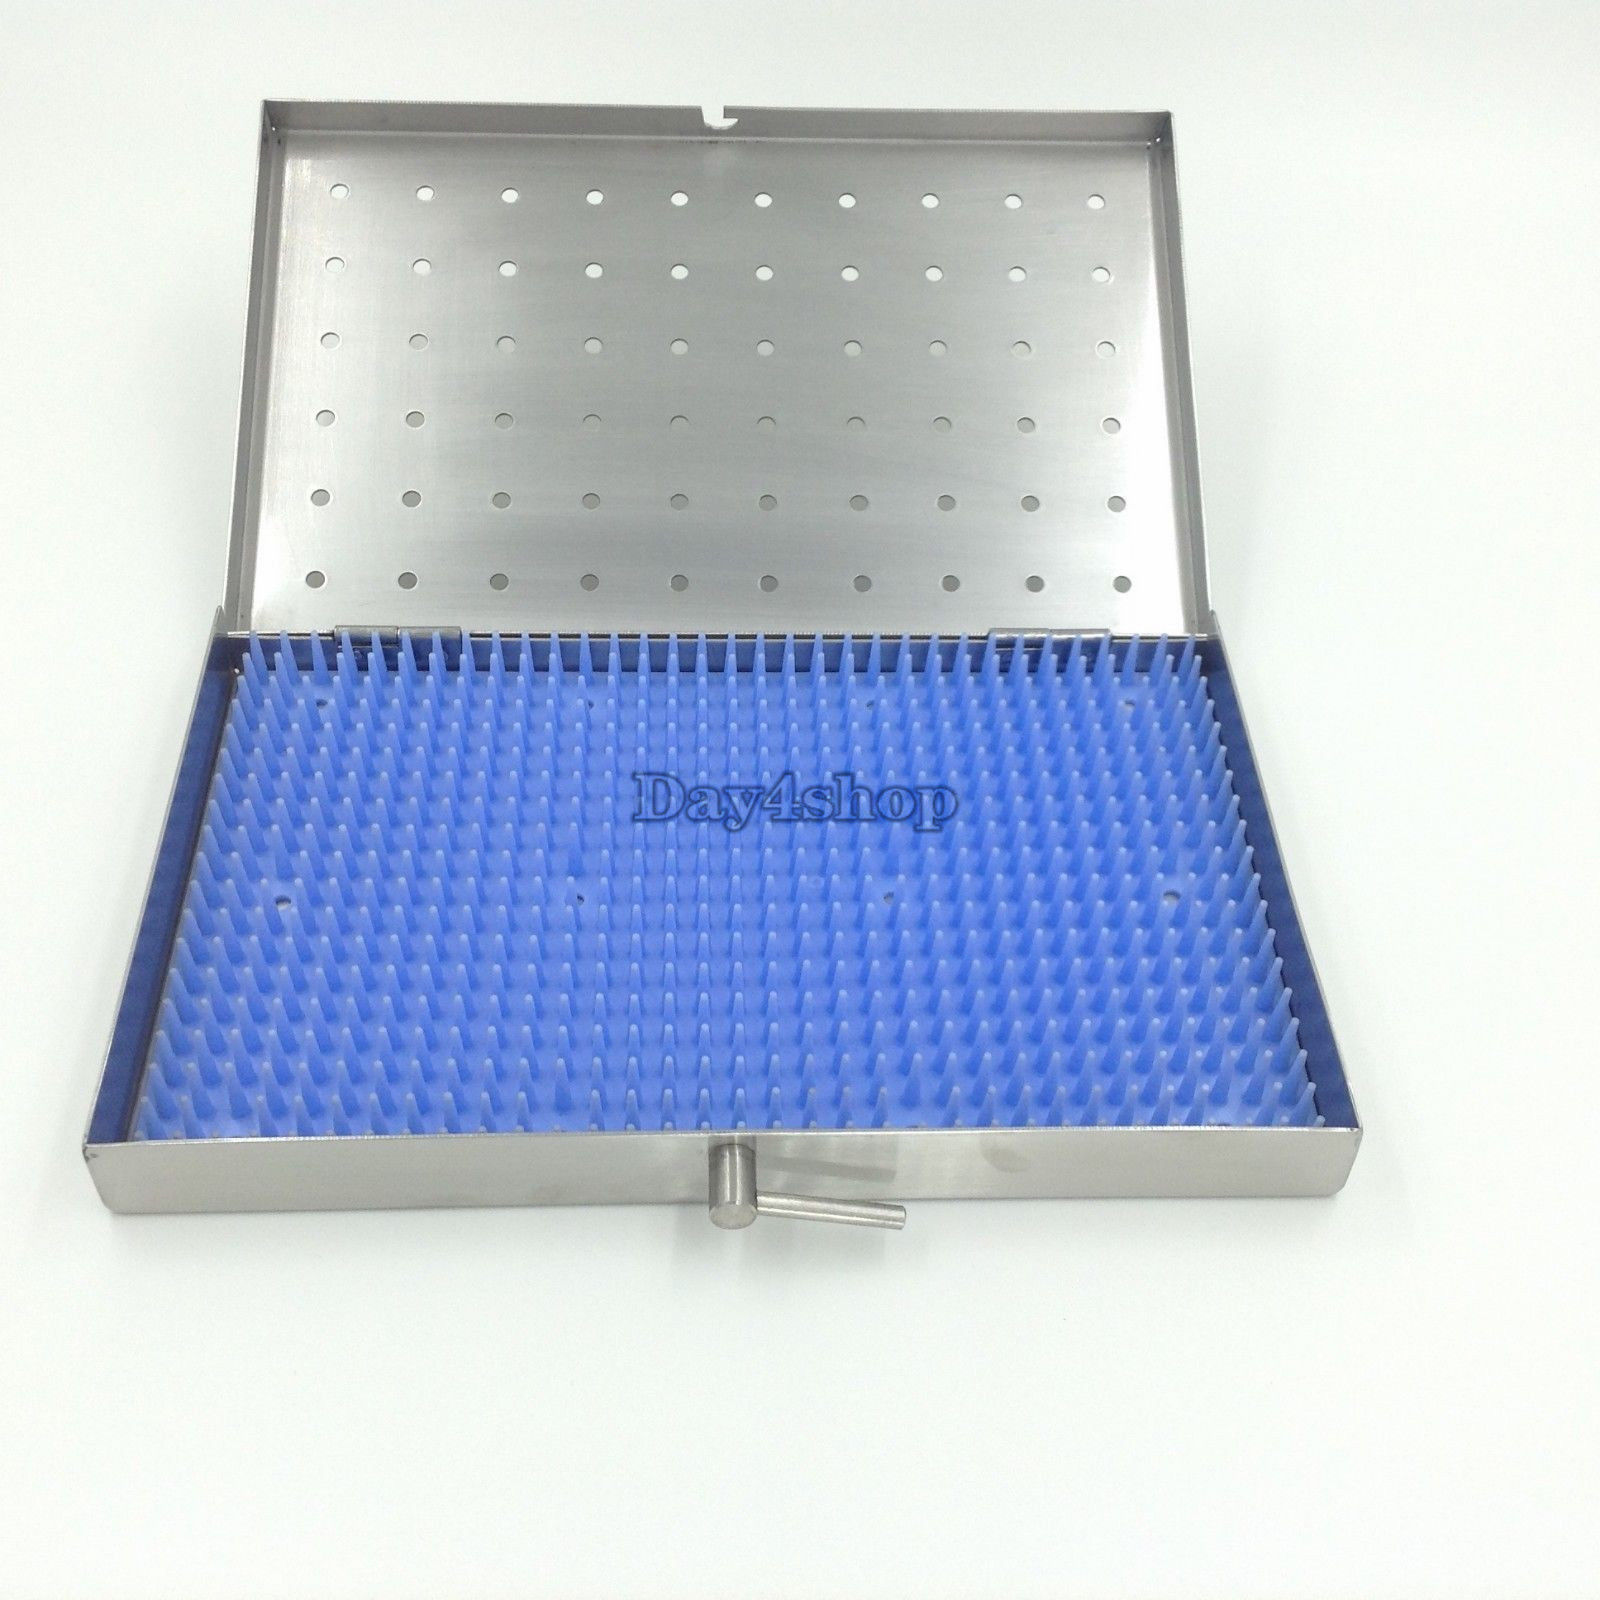 1Set Stainless Steel Sterilization Tray Case Middle Size Surgical Instrument